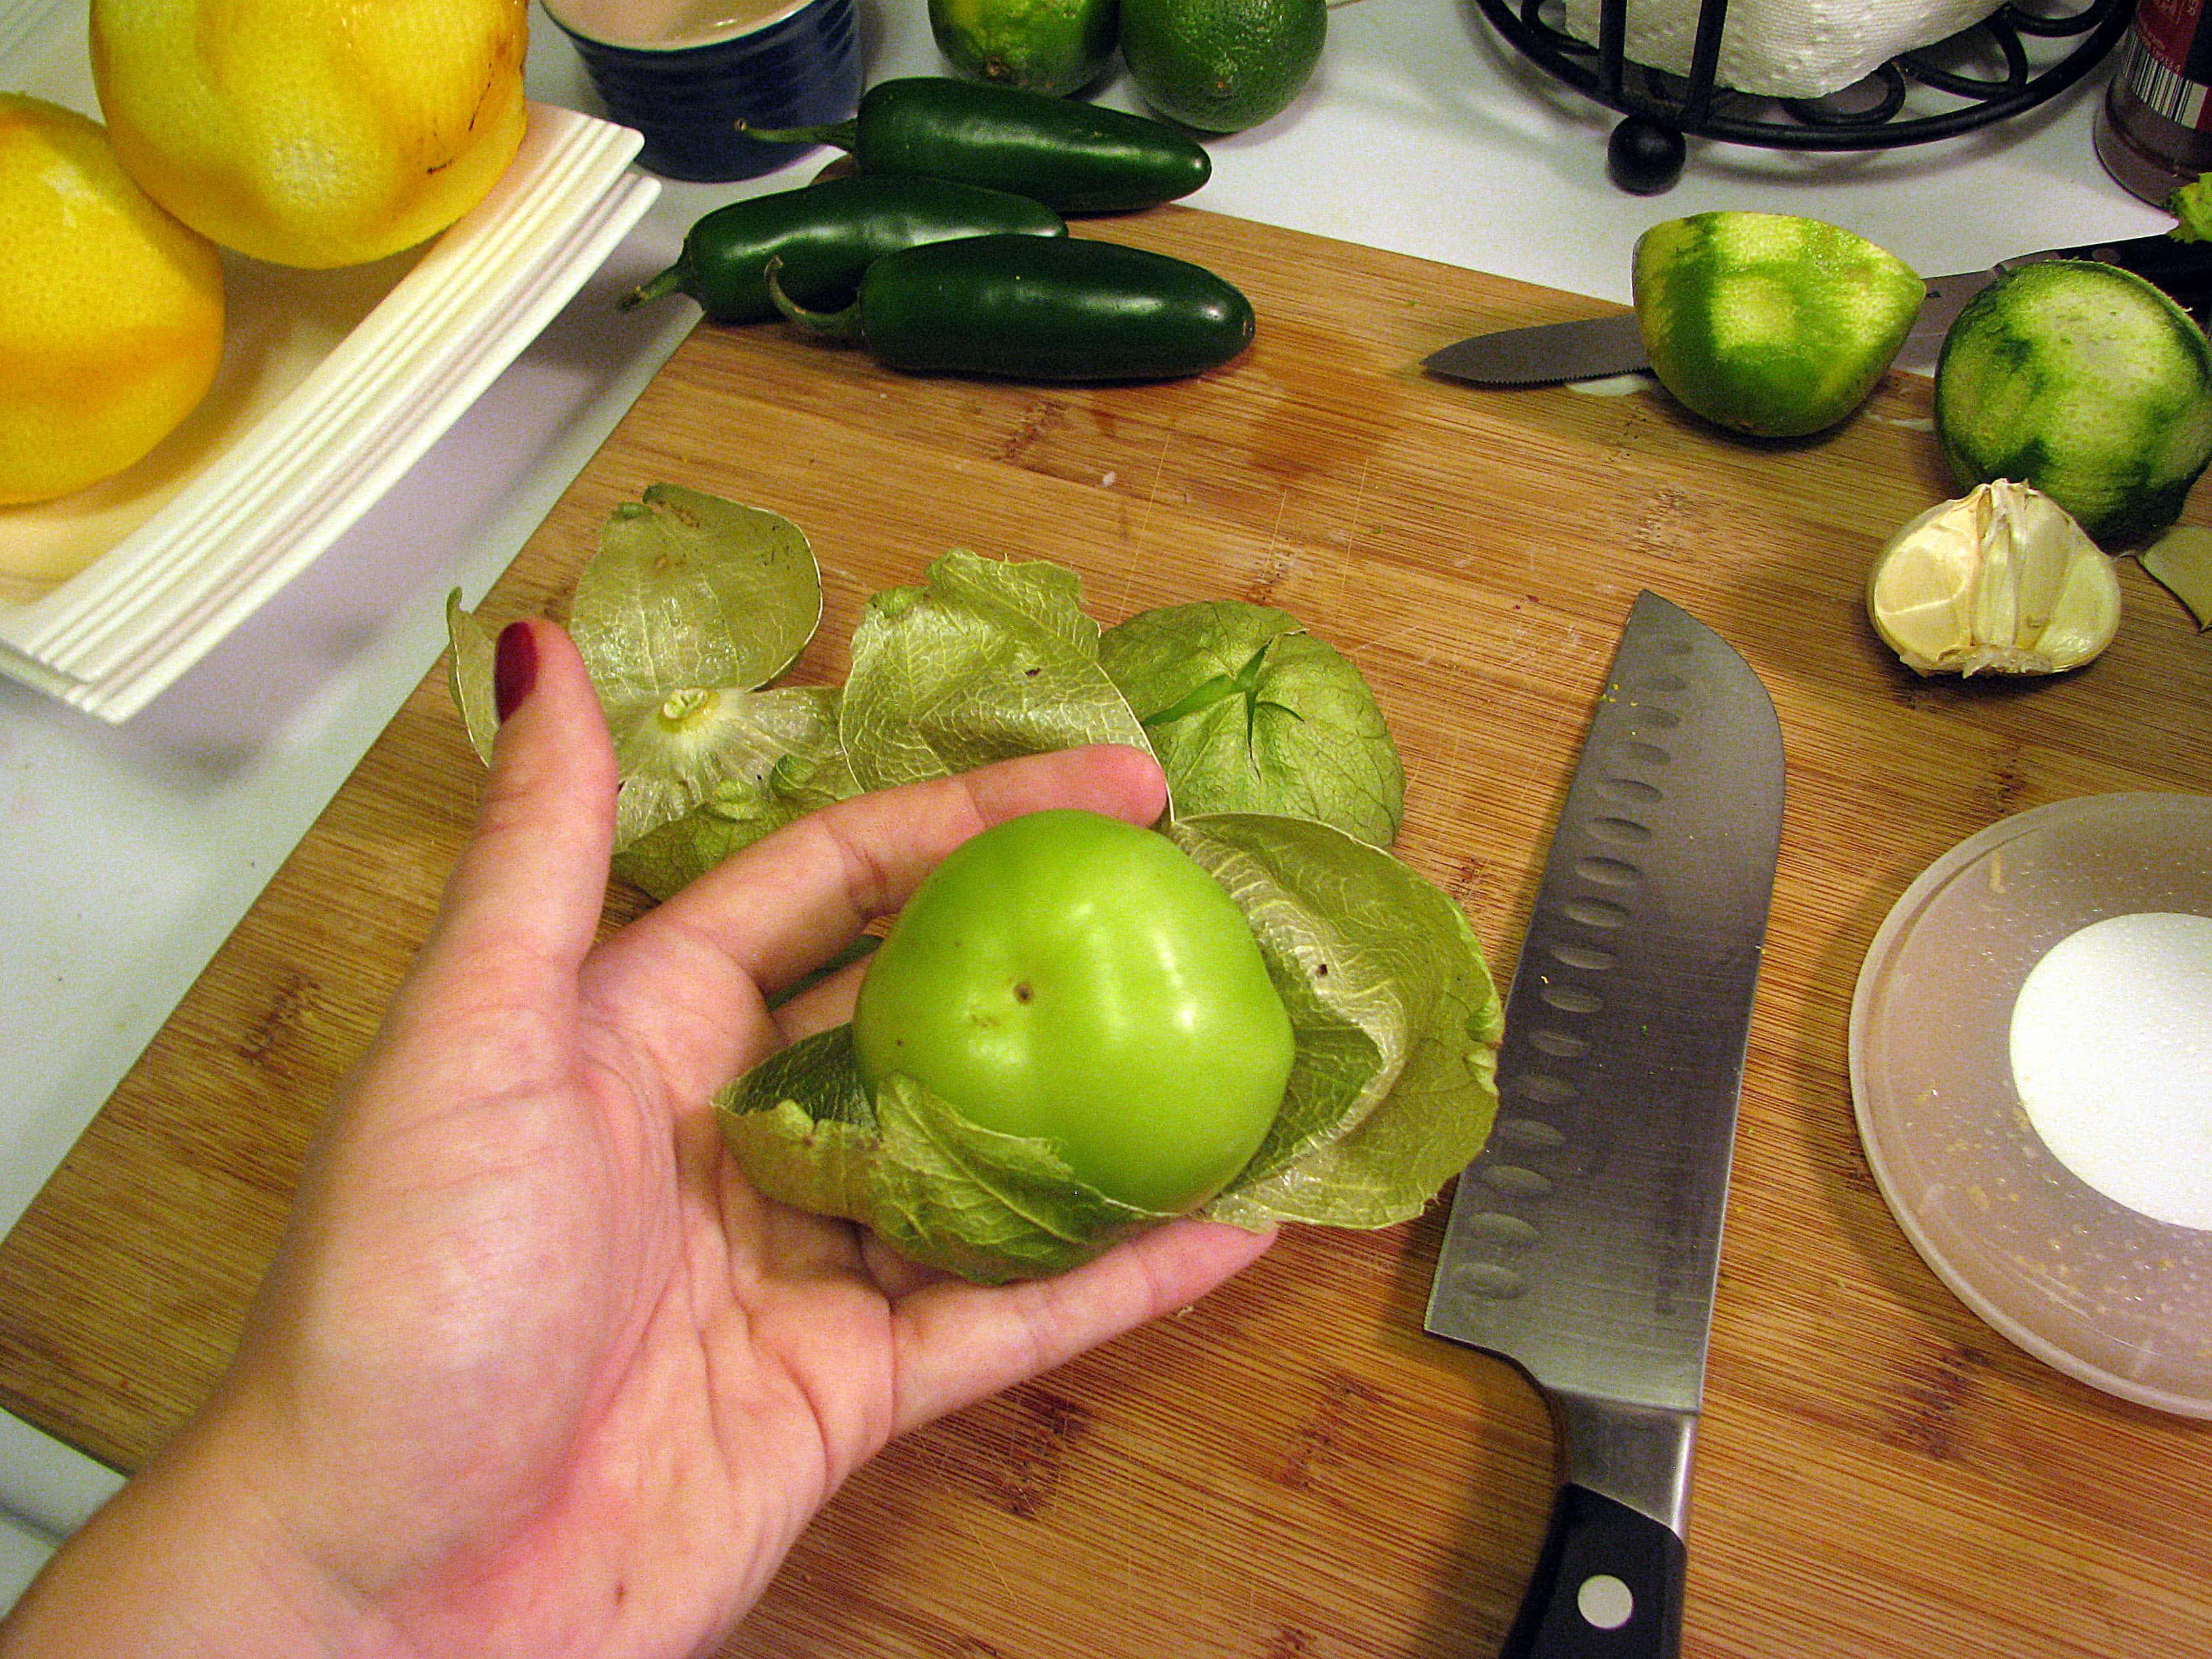 Remove skin from tomatillos